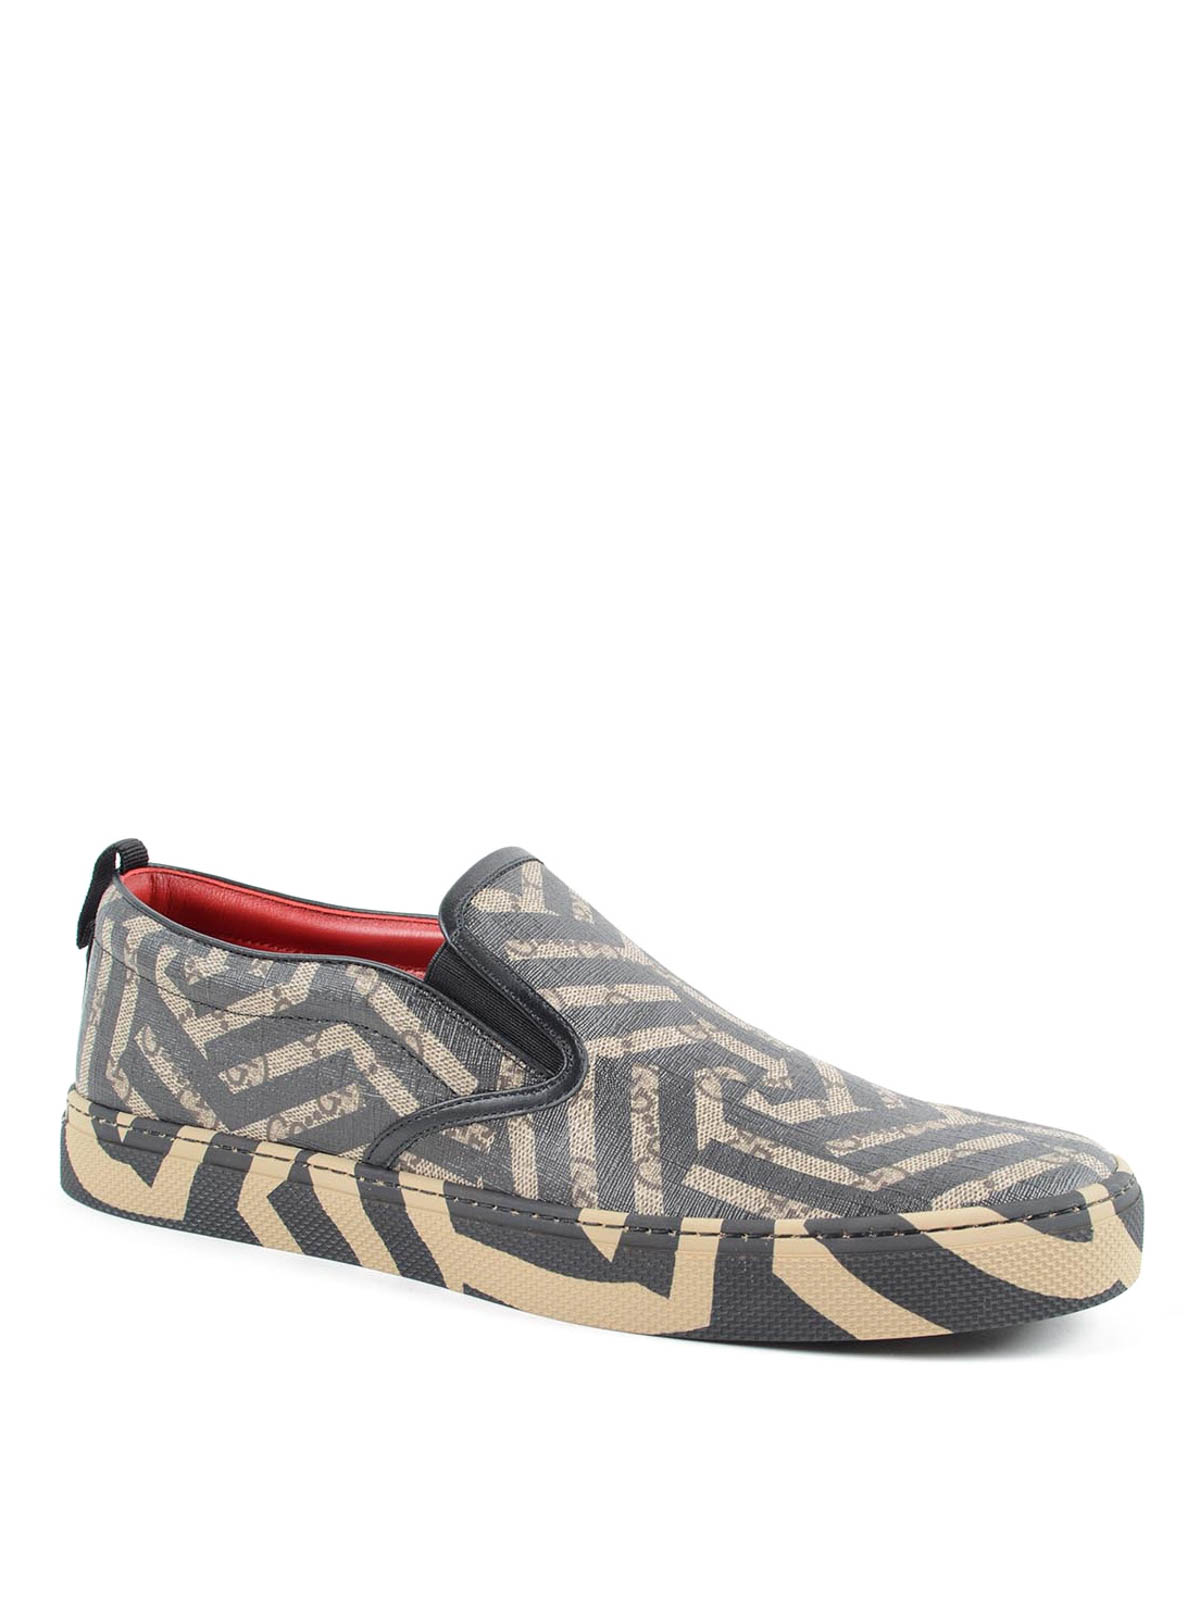 a65db14b14a Gucci - GG Caleido sneakers - Loafers   Slippers - 407362 KVW40 9761